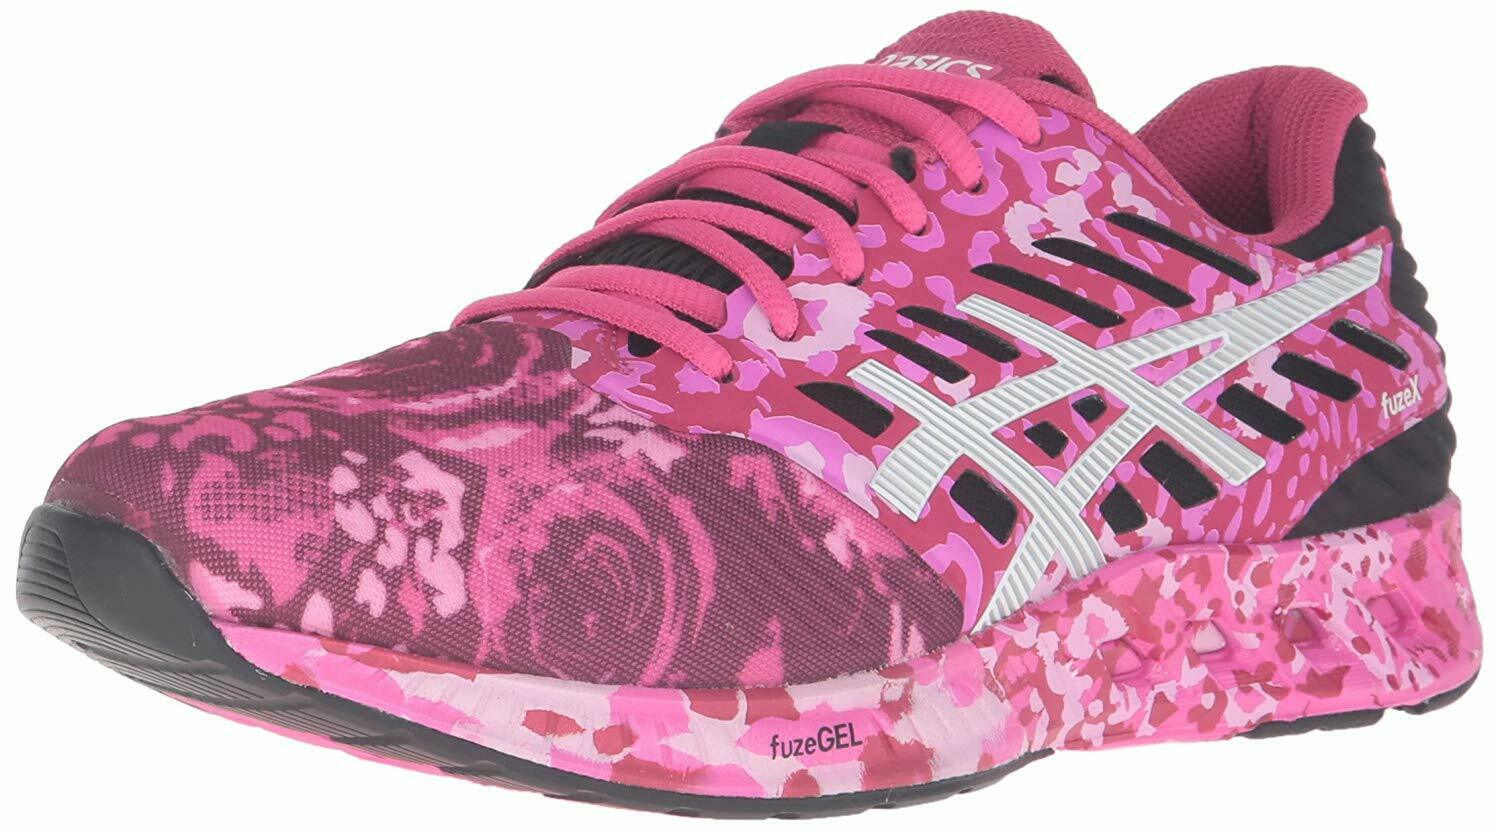 ASICS Women's FuzeX PR Running  shoes, size US Women's 6  top brand